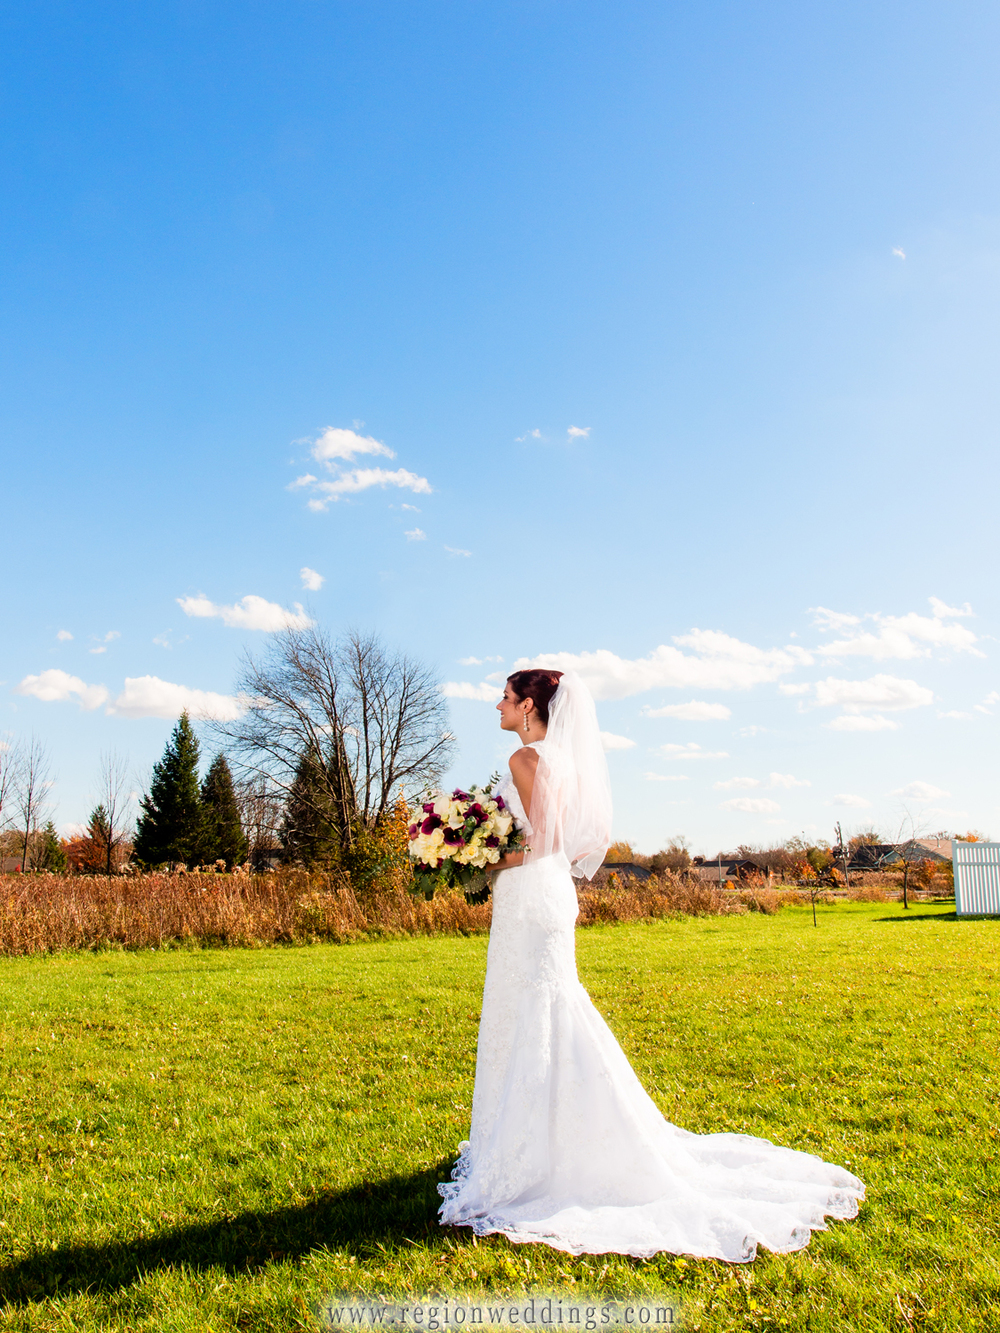 A beautiful bride shows off her dress underneath the blue skies on the morning of her wedding.